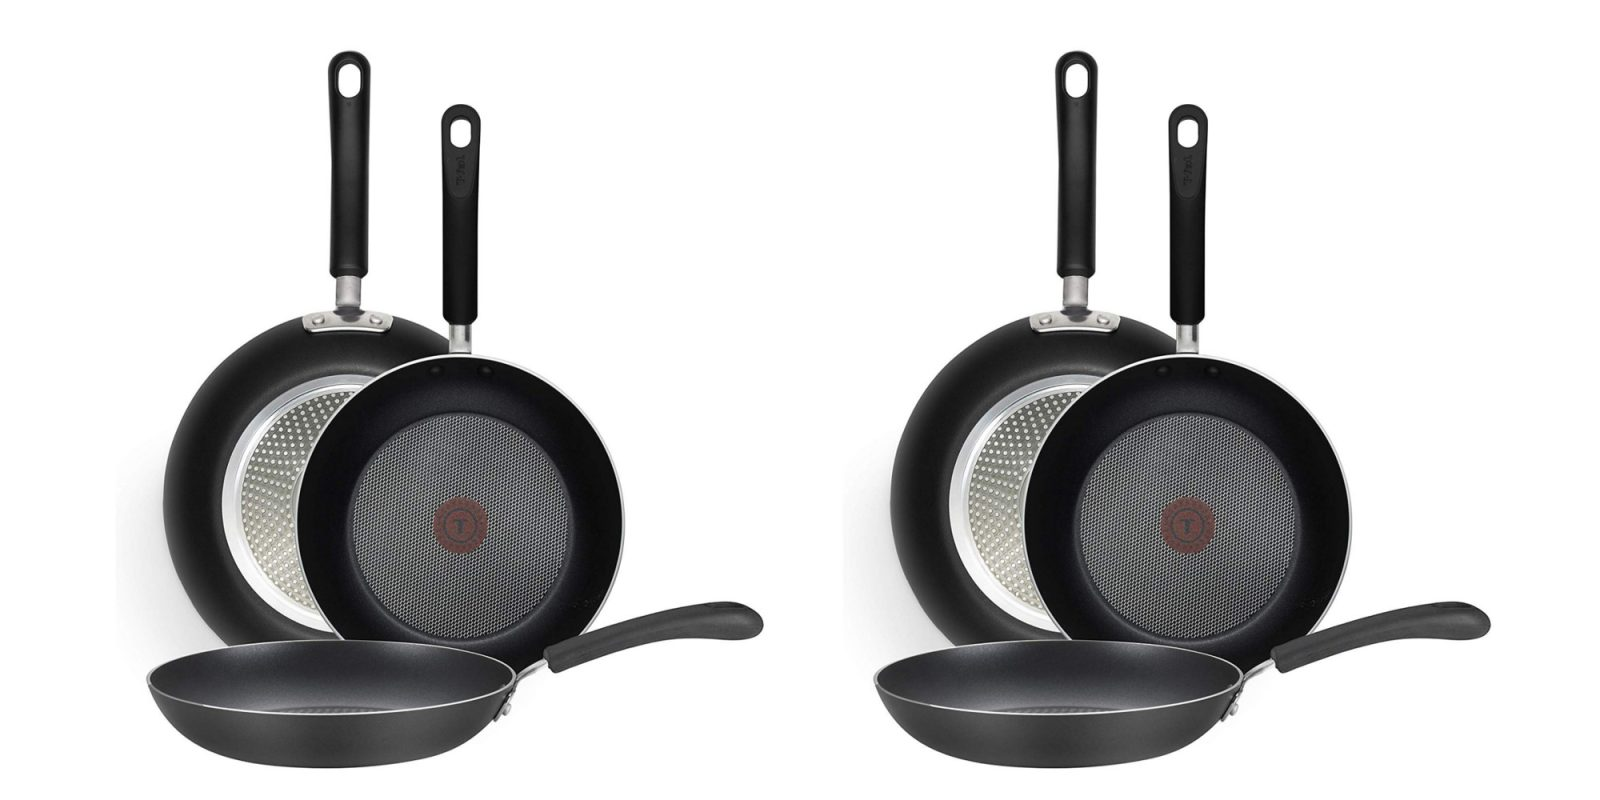 T-fal's Nonstick Fry Pan Cookware Set matching the Amazon low at $50 (30% off)